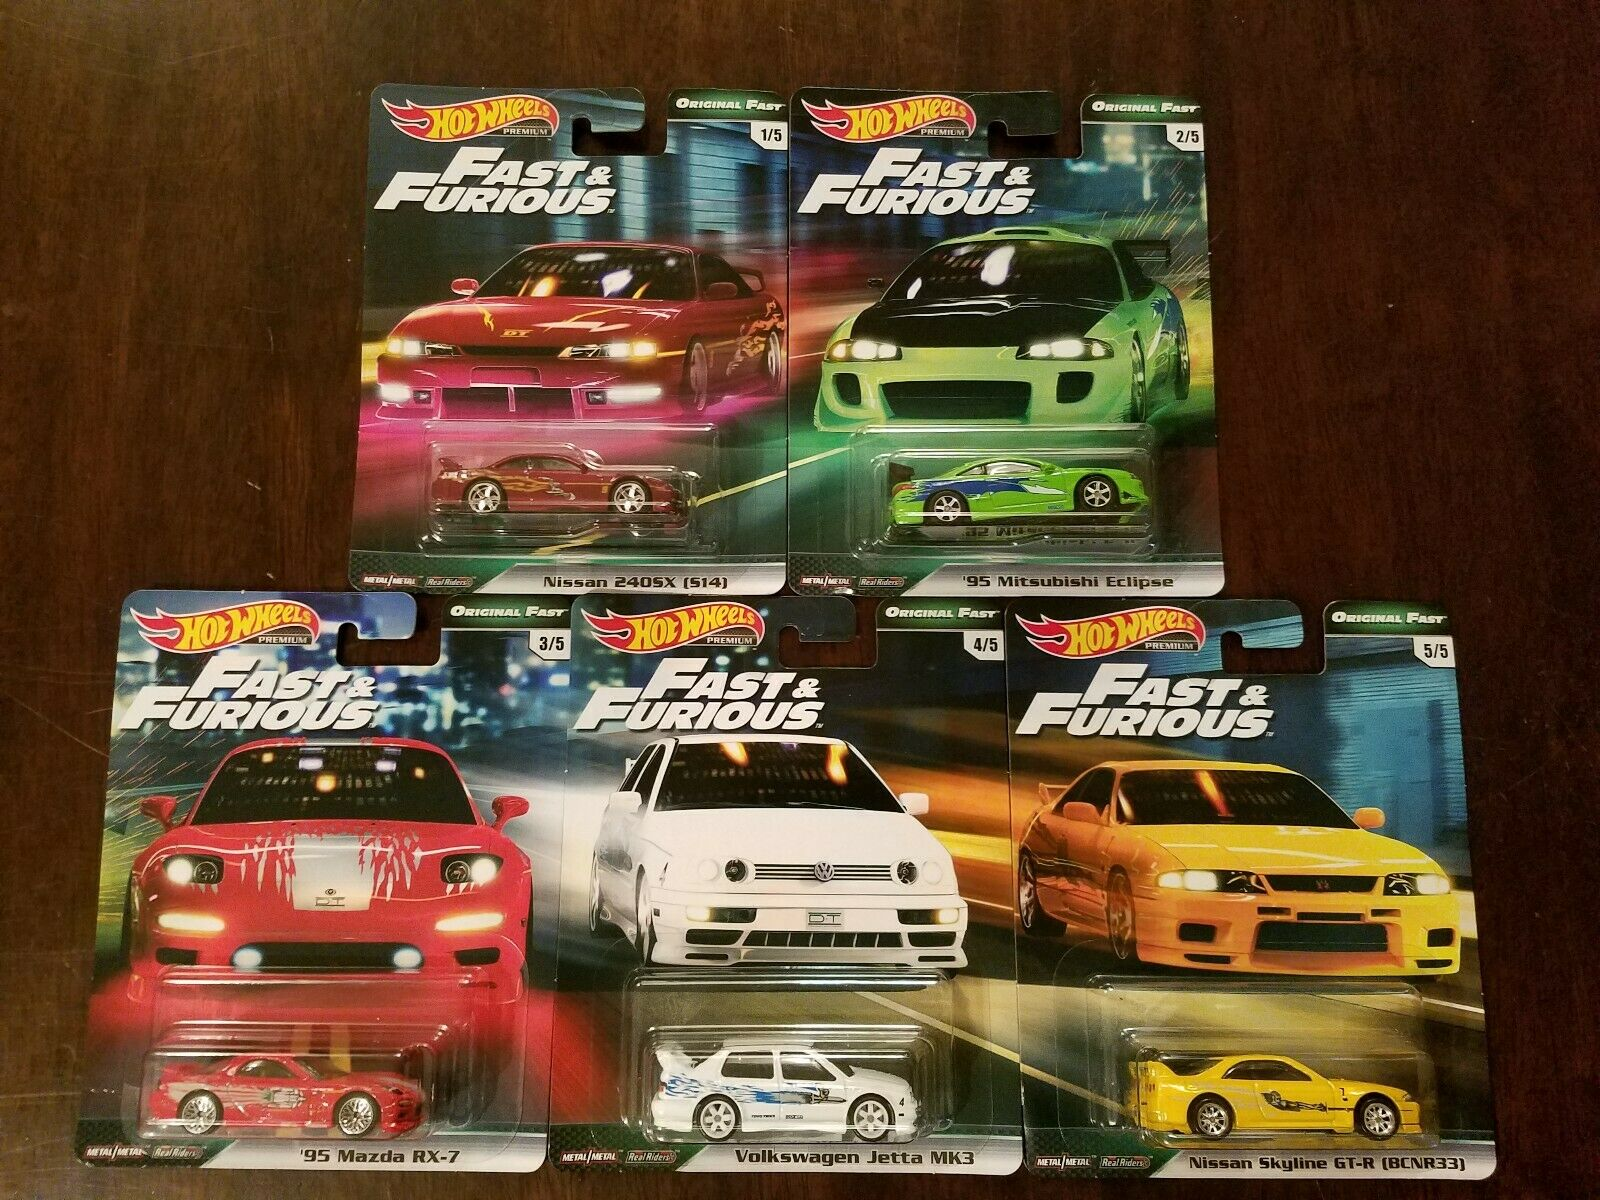 Hot Wheels 2019 Premium Original Original Original Fast & Furious Complete Set (Lot of 5) NEW 04d92a